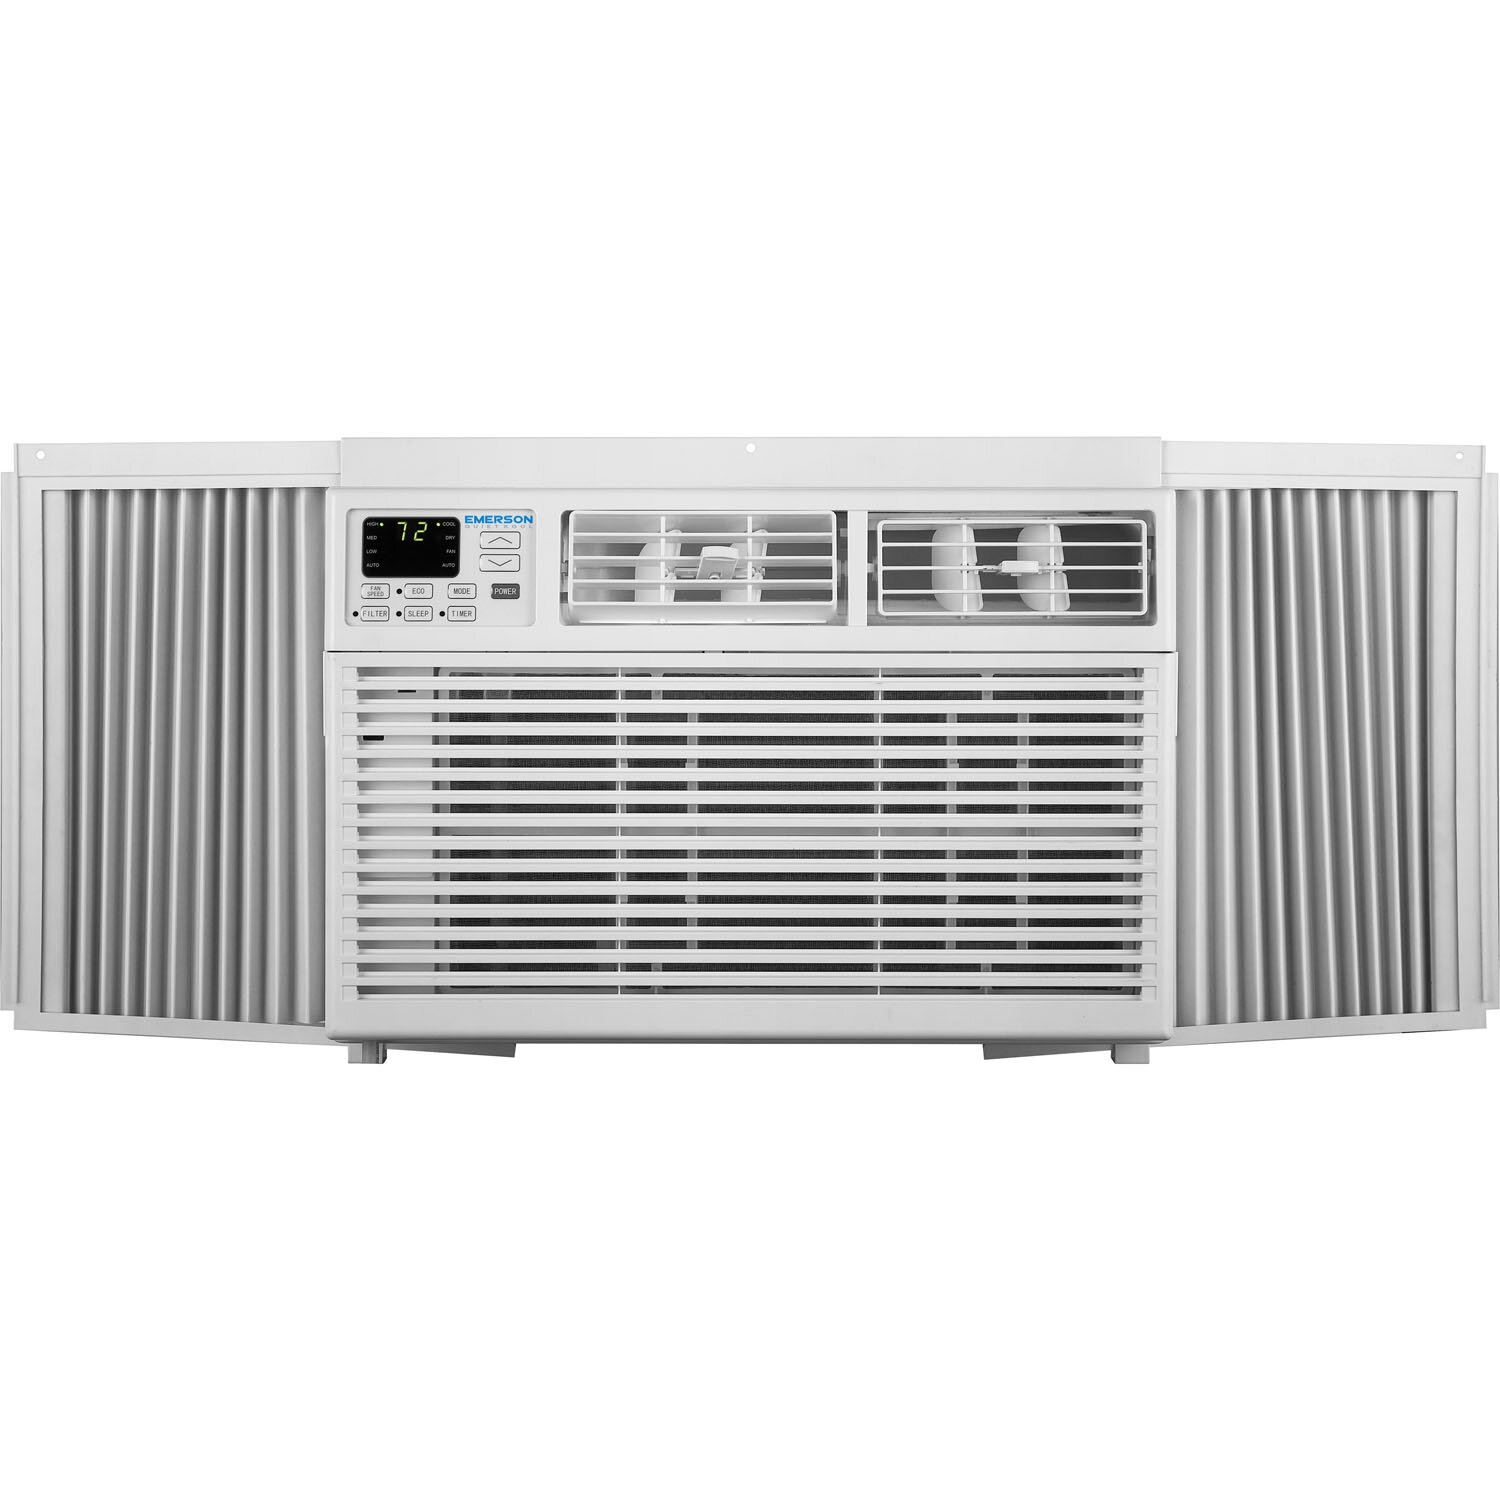 Emerson quiet kool emerson quiet kool 12 000 btu window for 12000 btu window ac